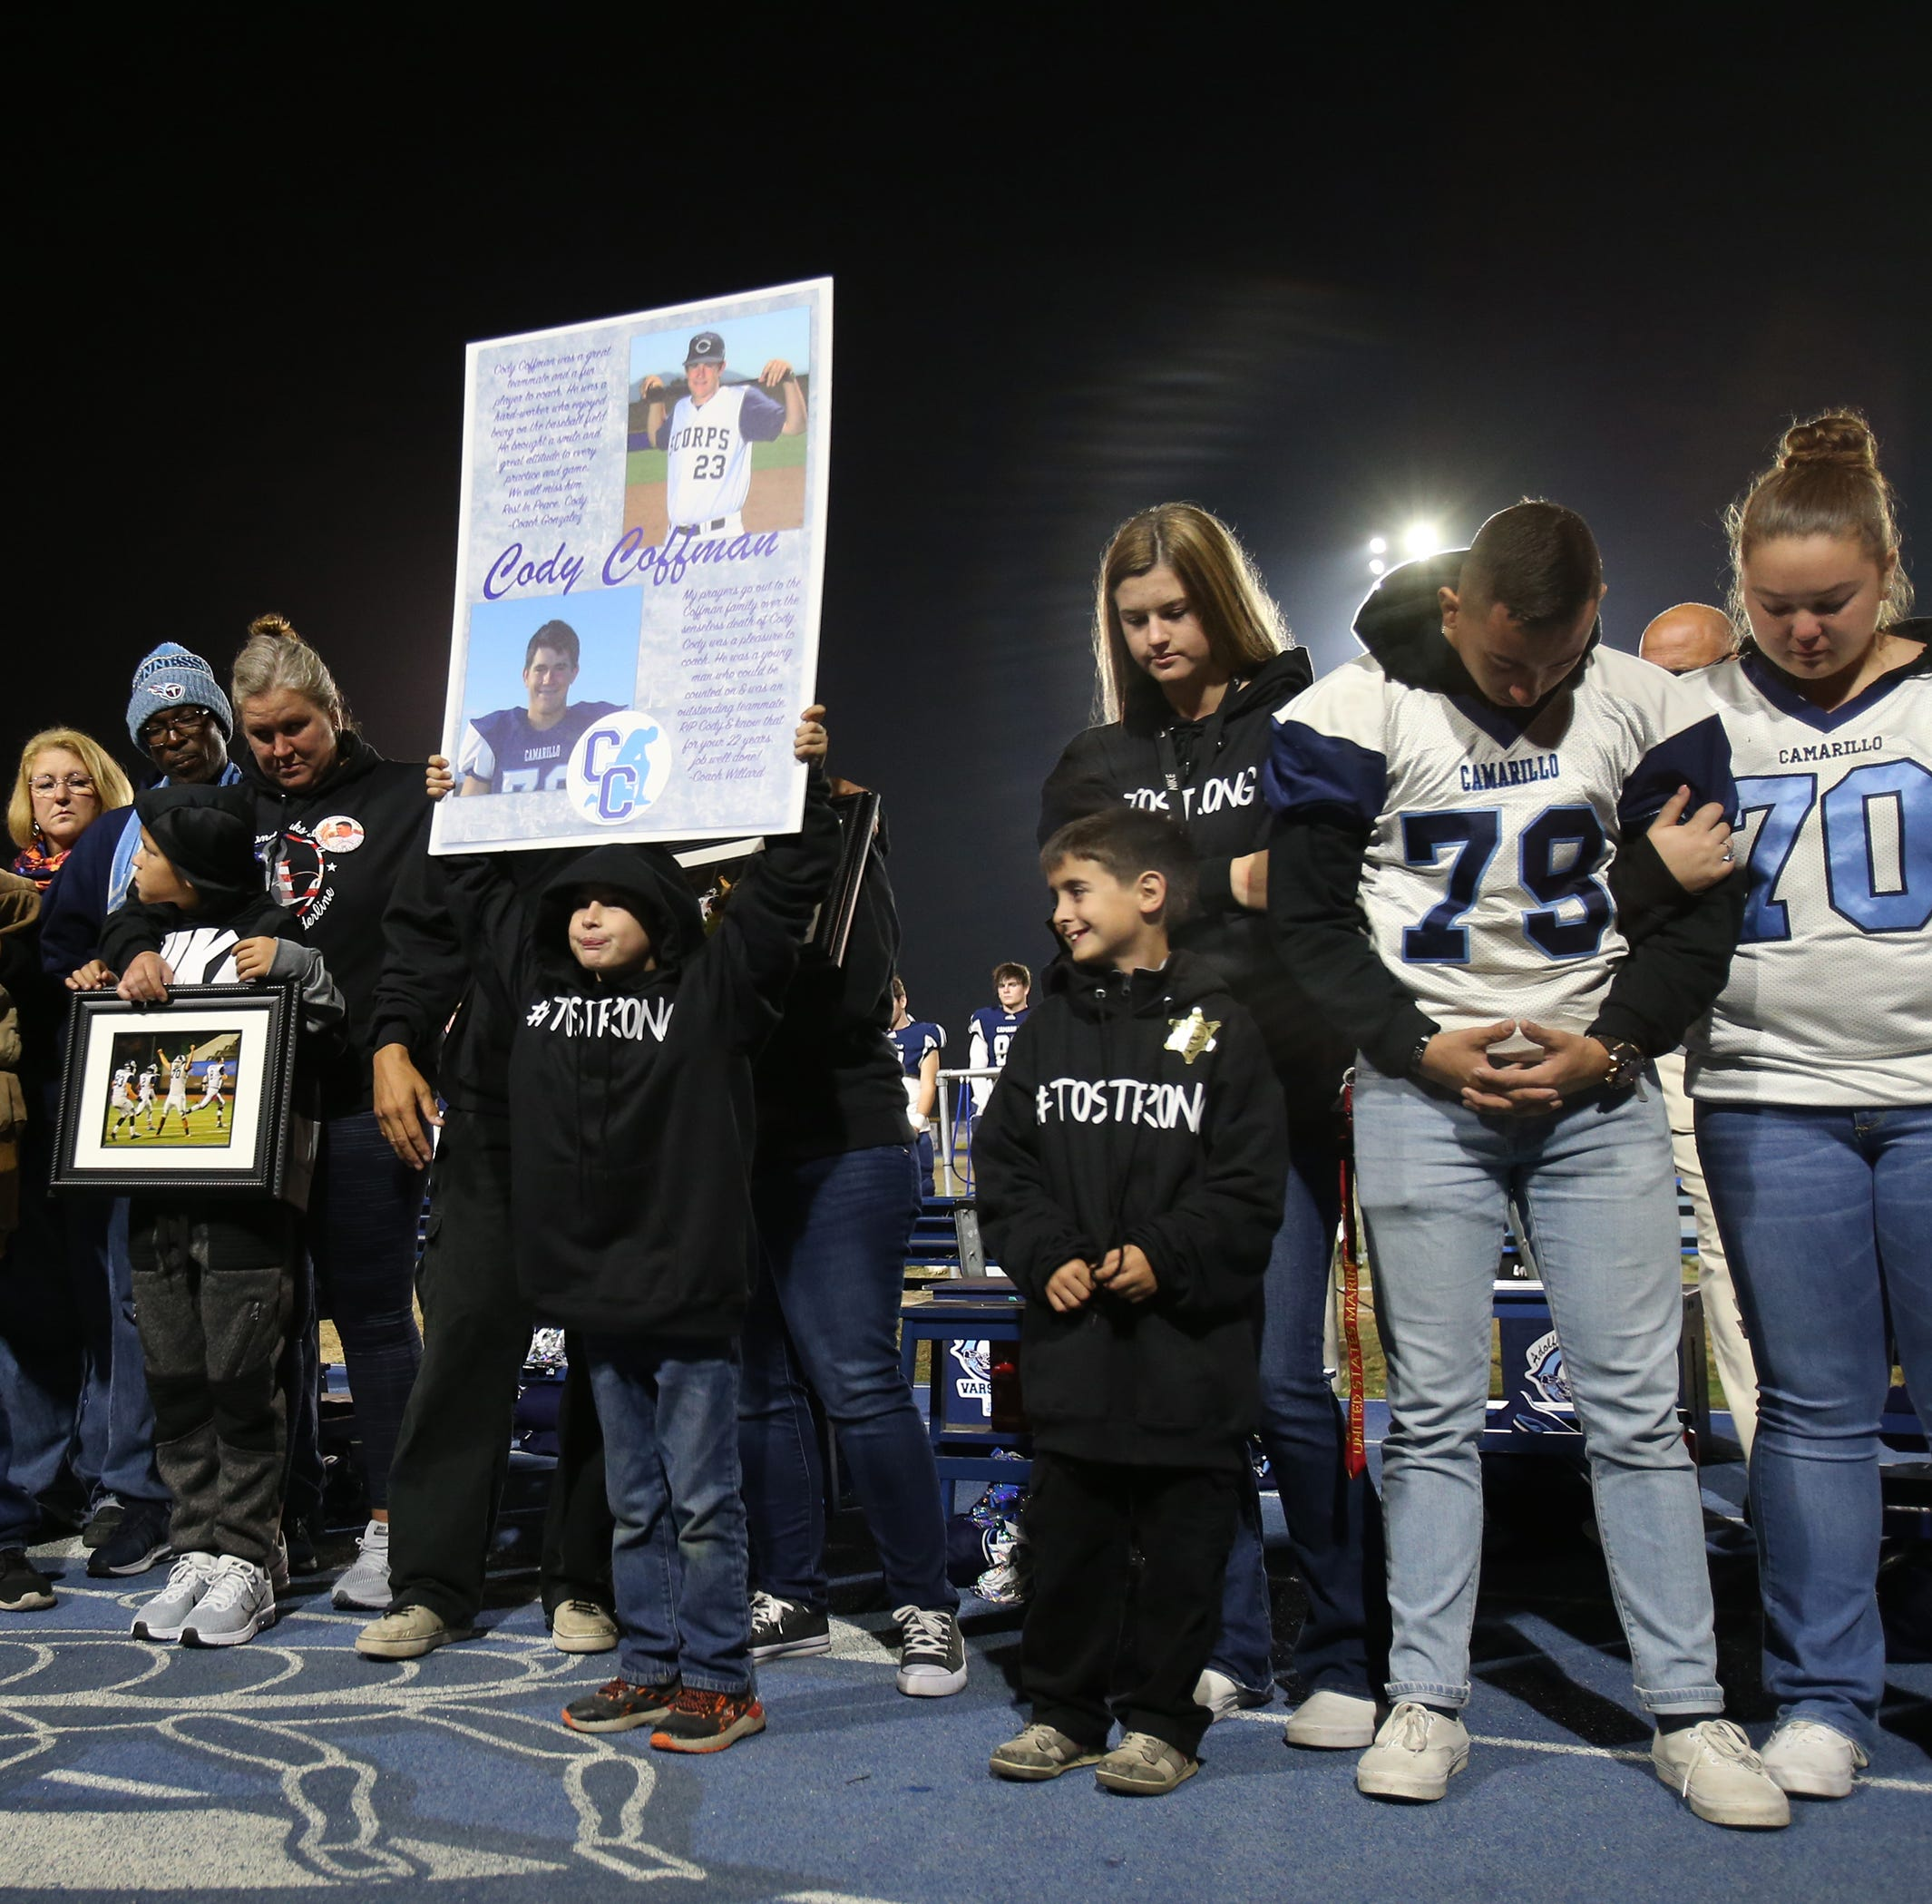 Emotional night ends with a semifinal loss for Camarillo football team